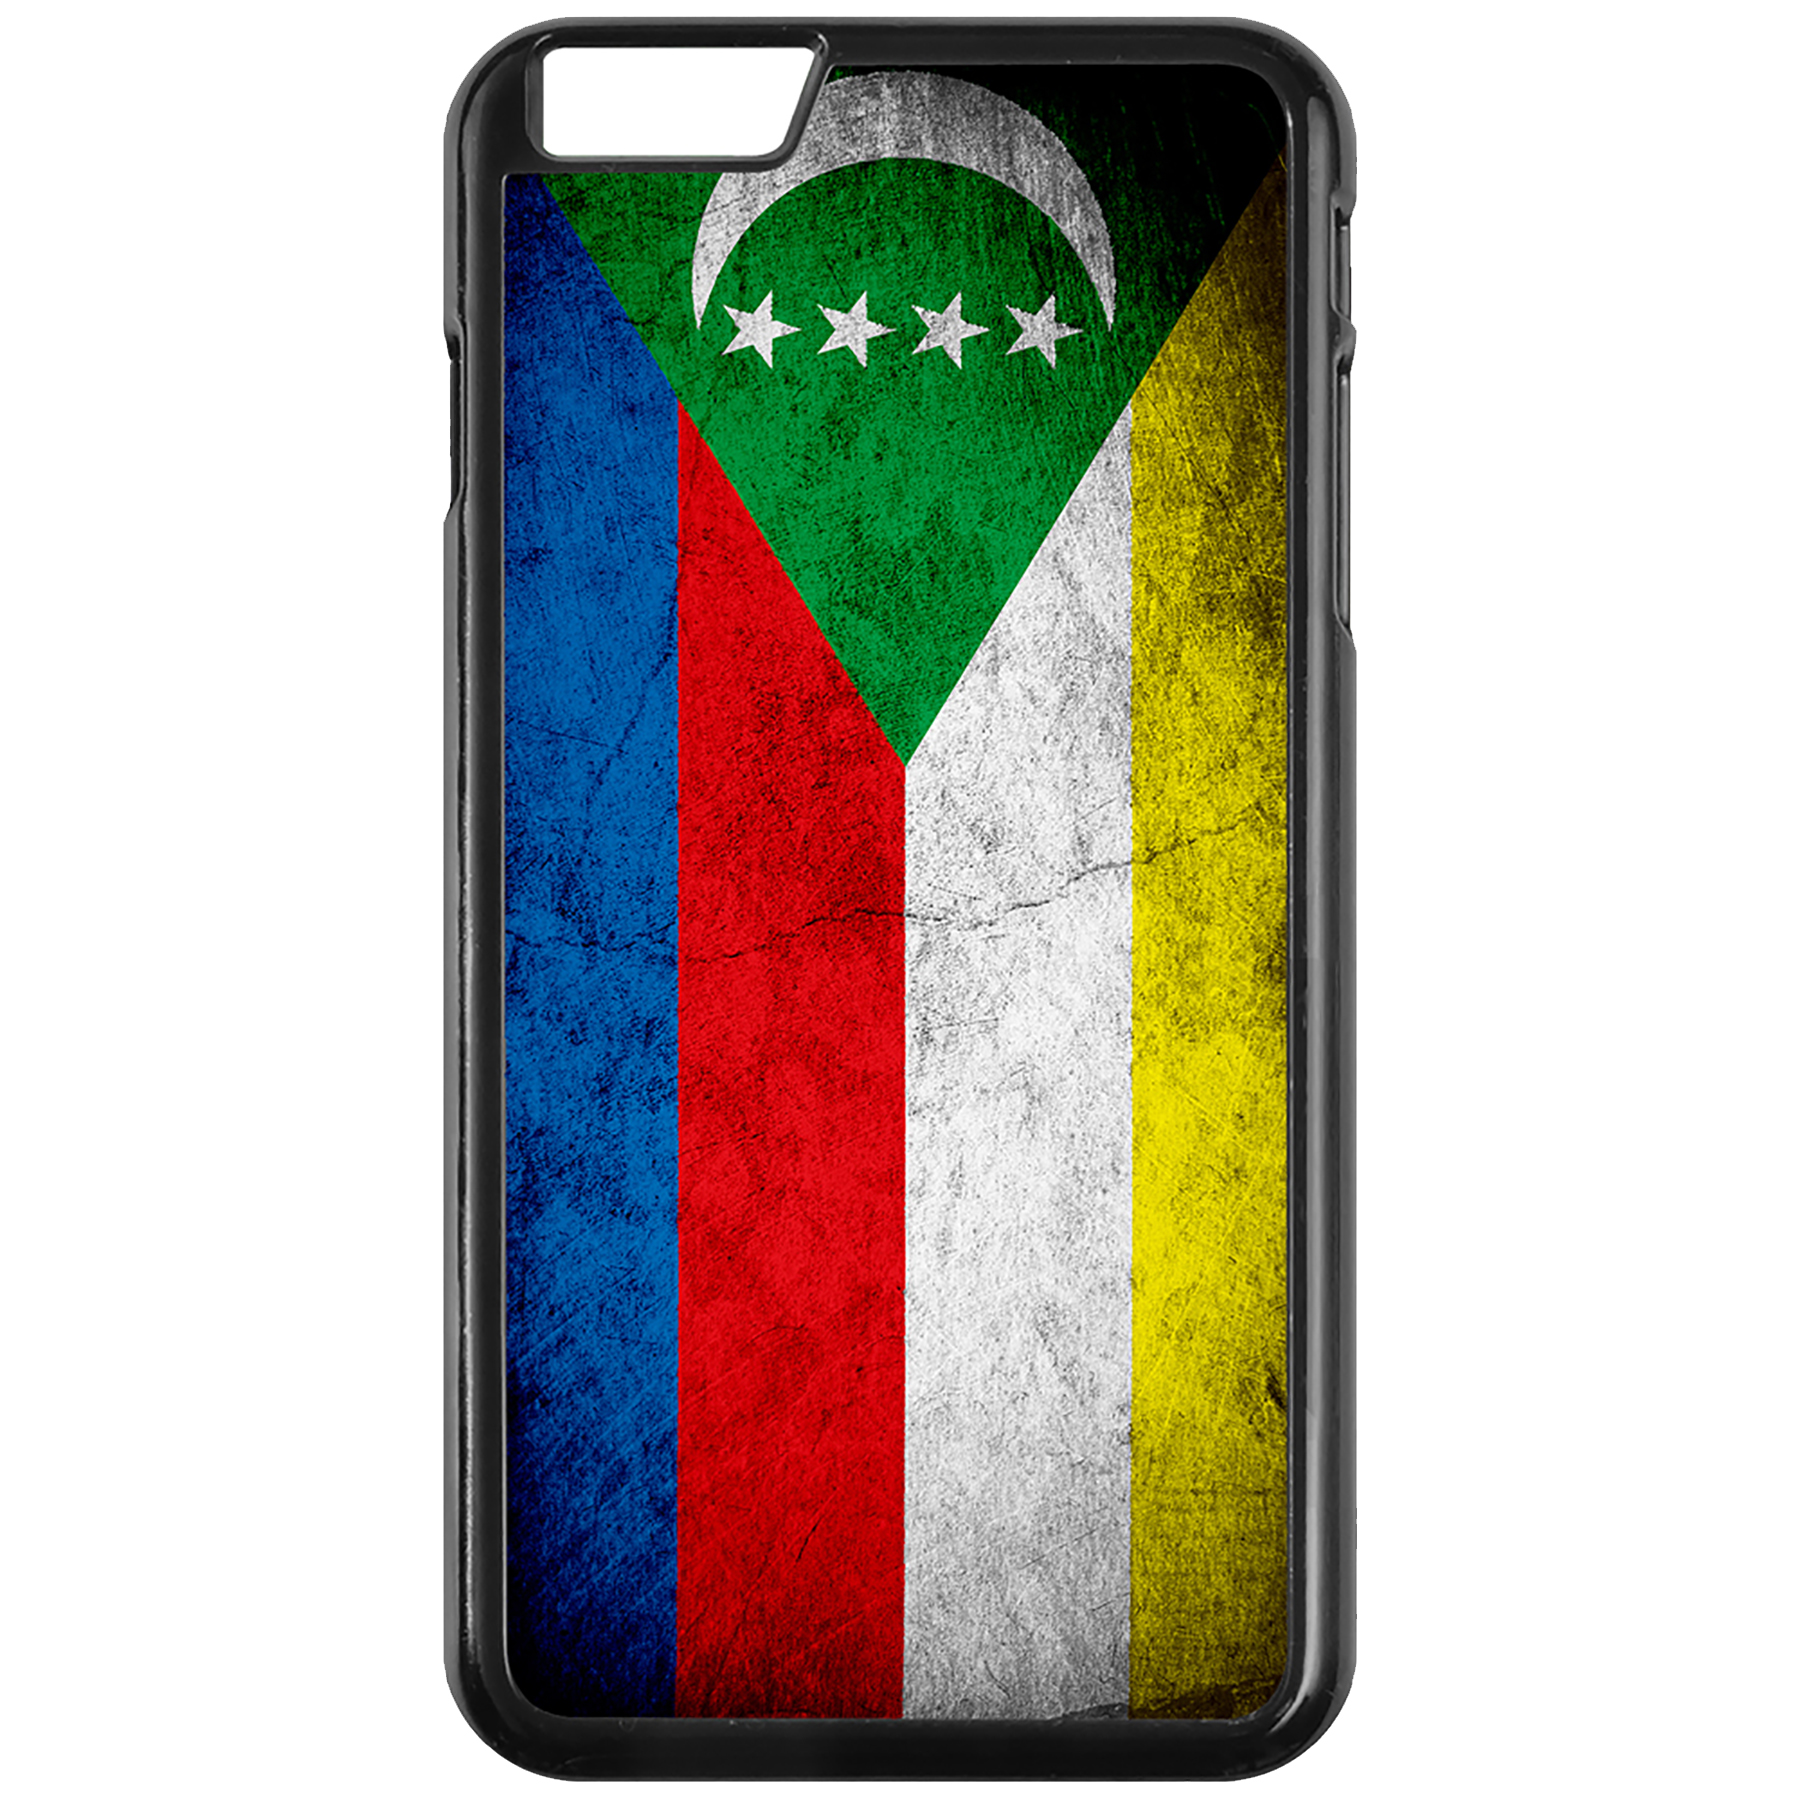 Apple-iPhone-Case-with-Flag-of-Comoros-Comorian-Many-Design-Options thumbnail 71